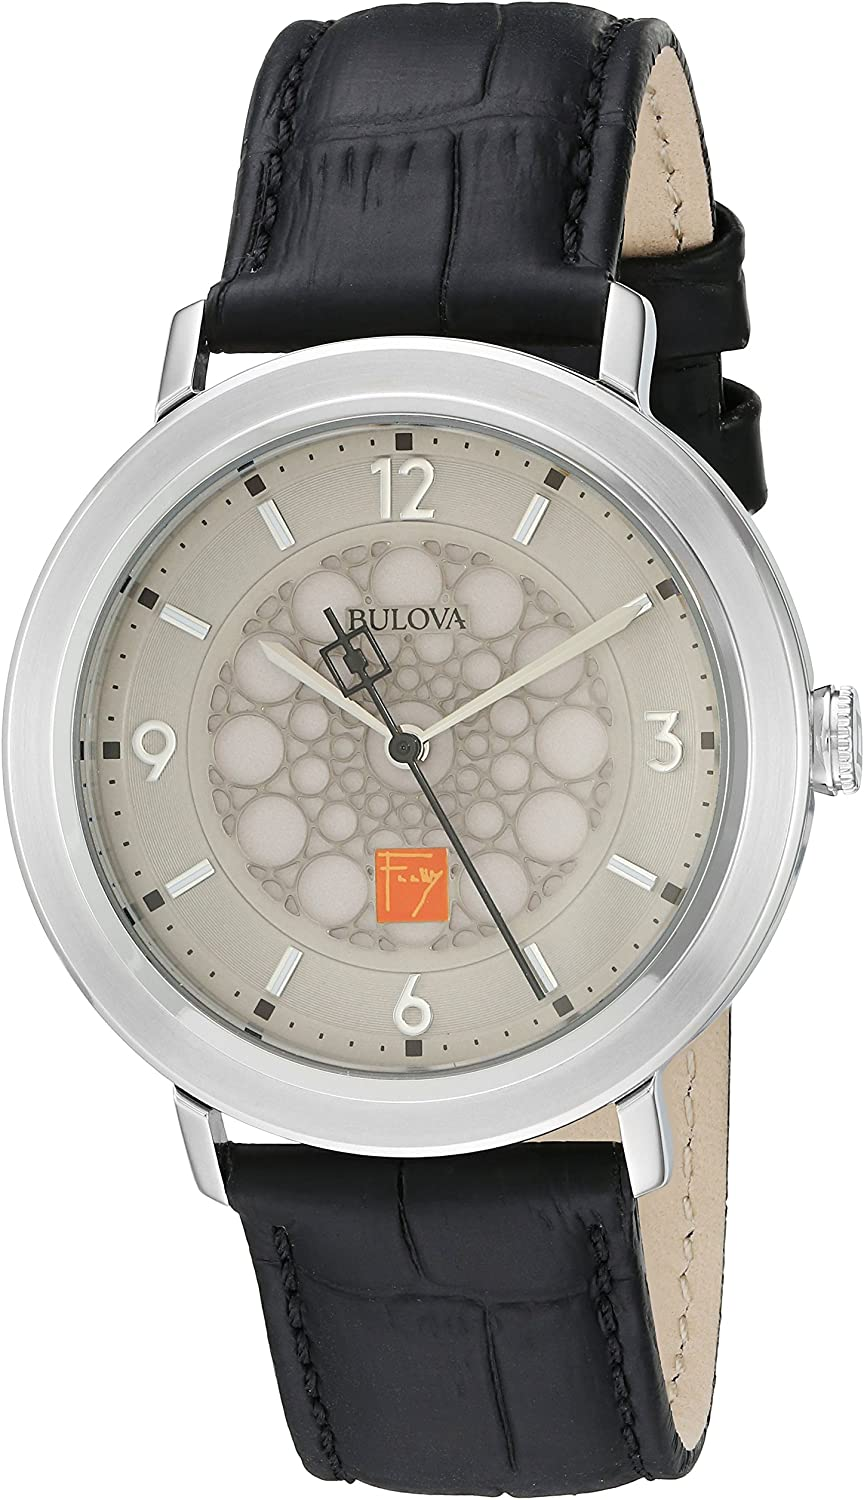 Bulova Men s Quartz Stainless Steel and Leather Dress Watch, Color Black Model 96A164